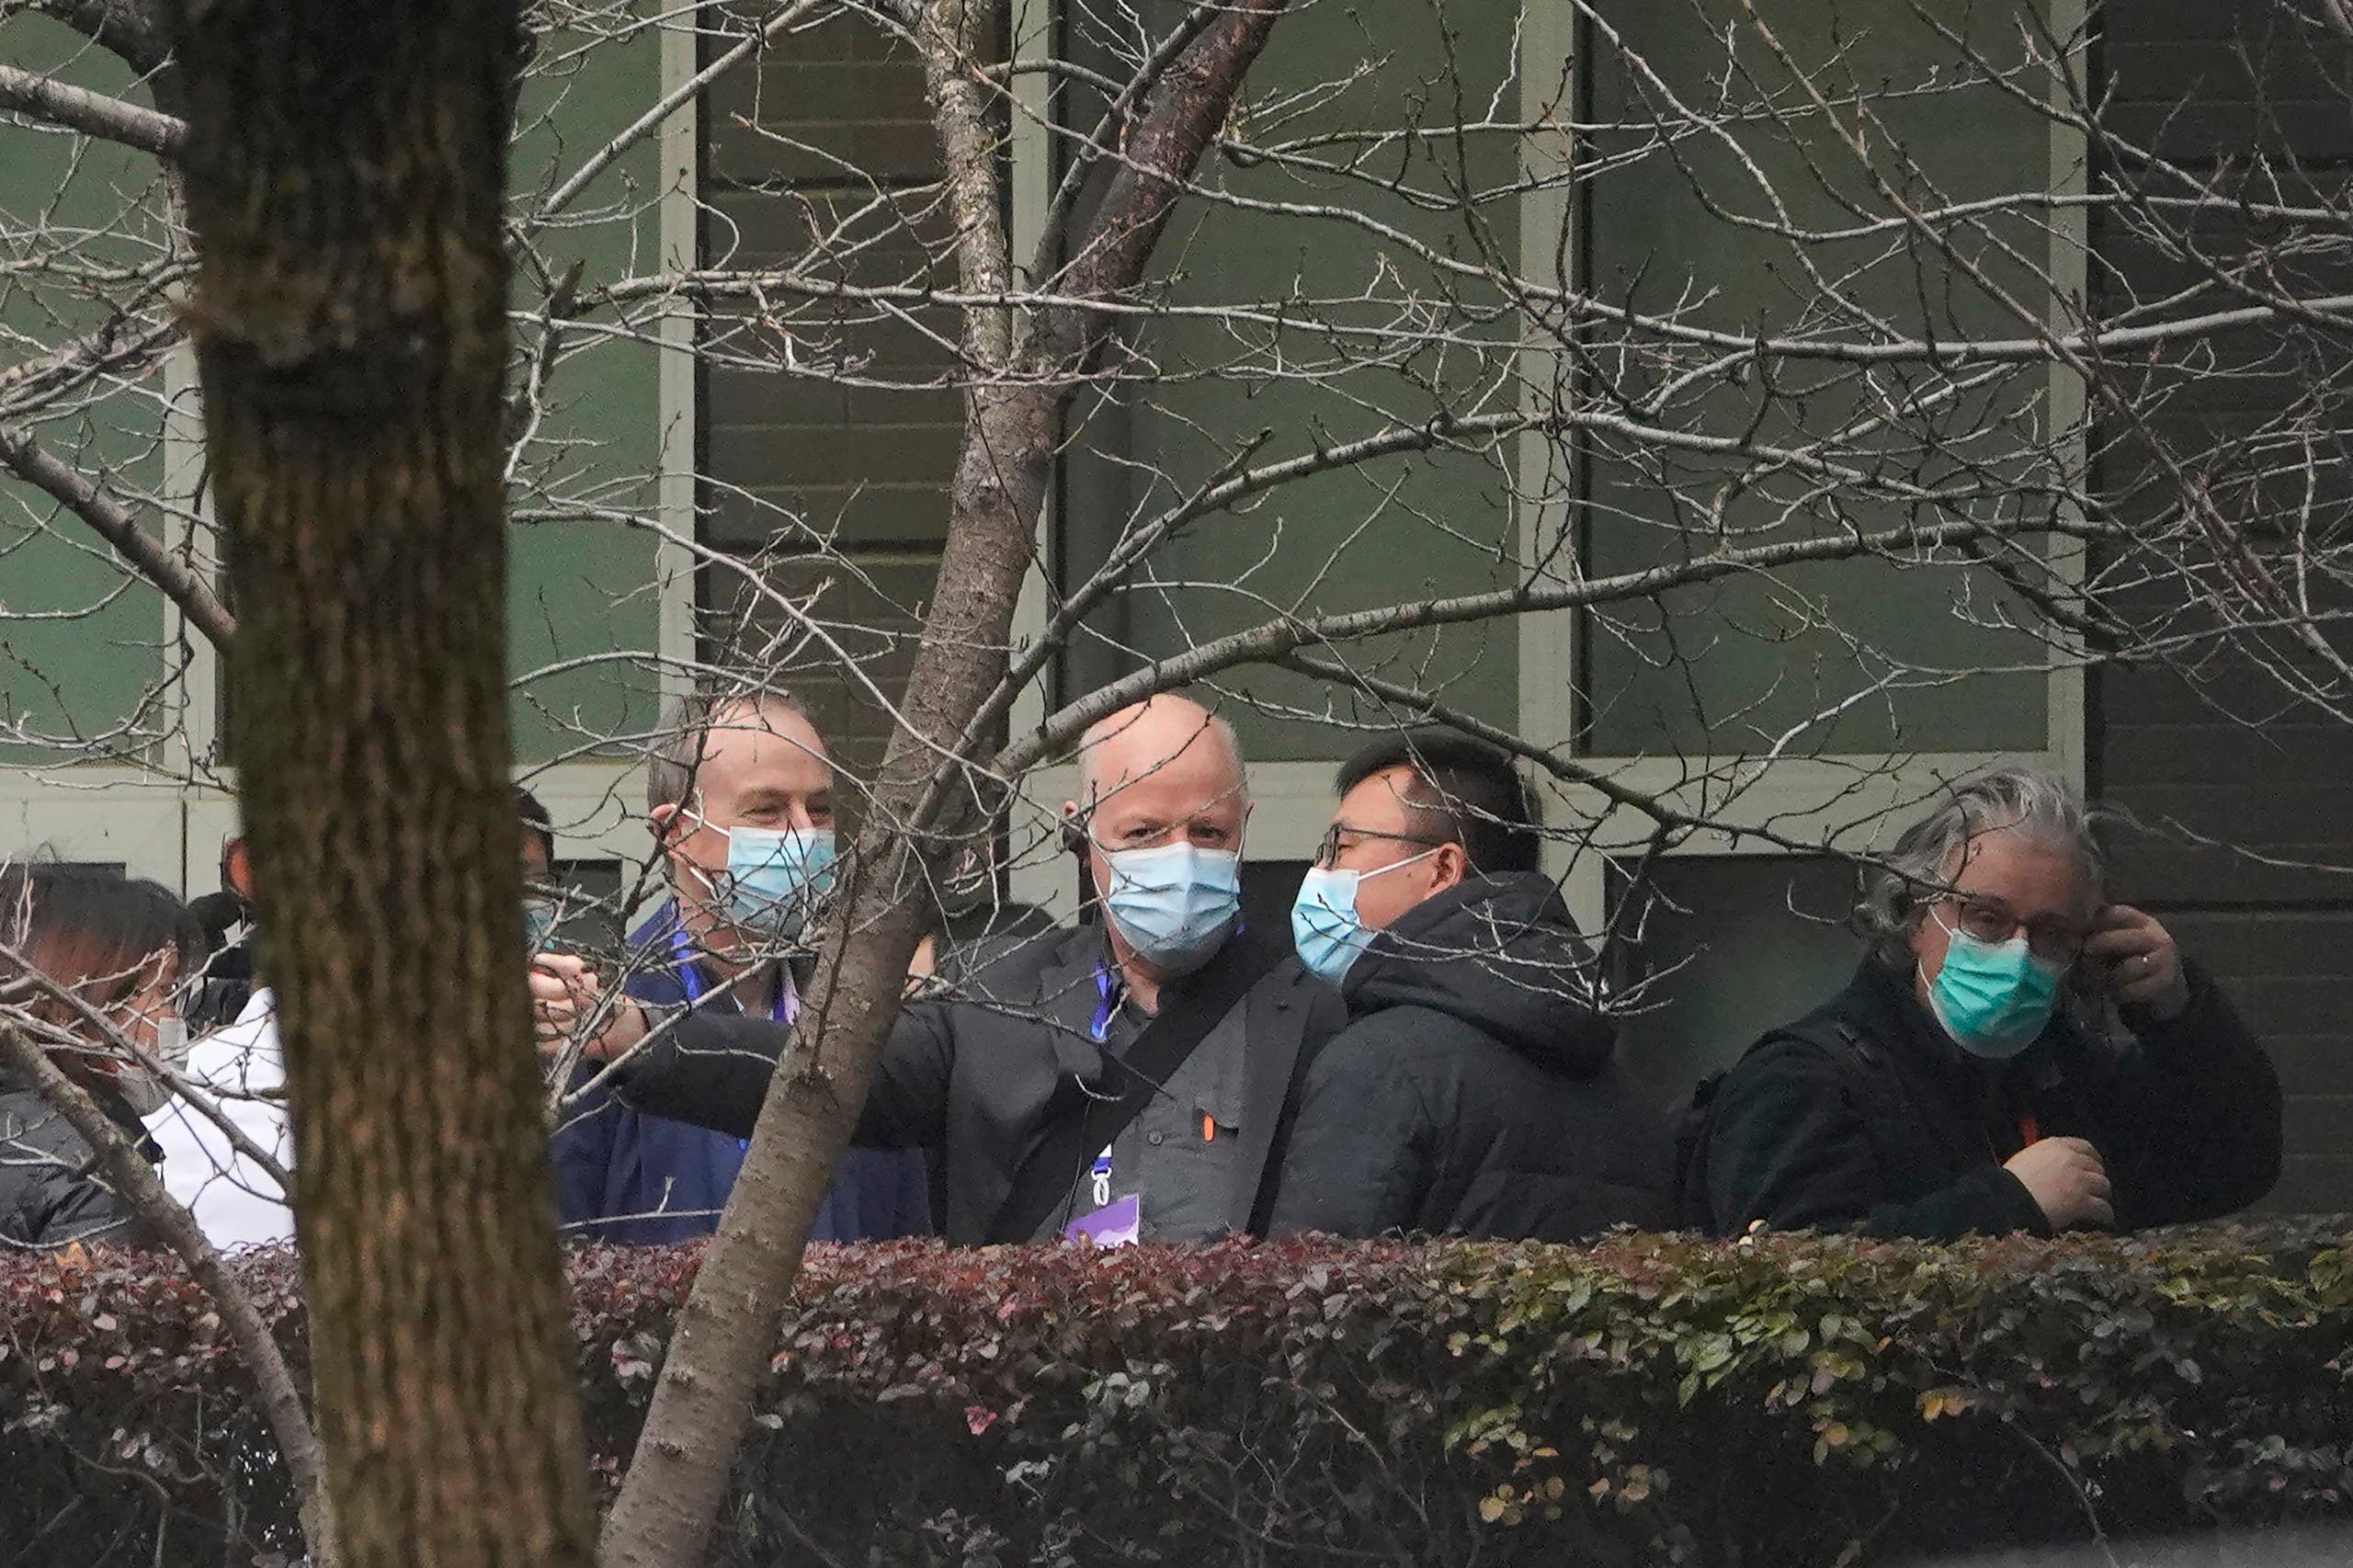 Peter Daszak of the World Health Organization team, center, chats after arriving at the Hubei Animal Disease Control and Prevention Center in Wuhan, China, Tuesday, Feb. 2, 2021. (AP)